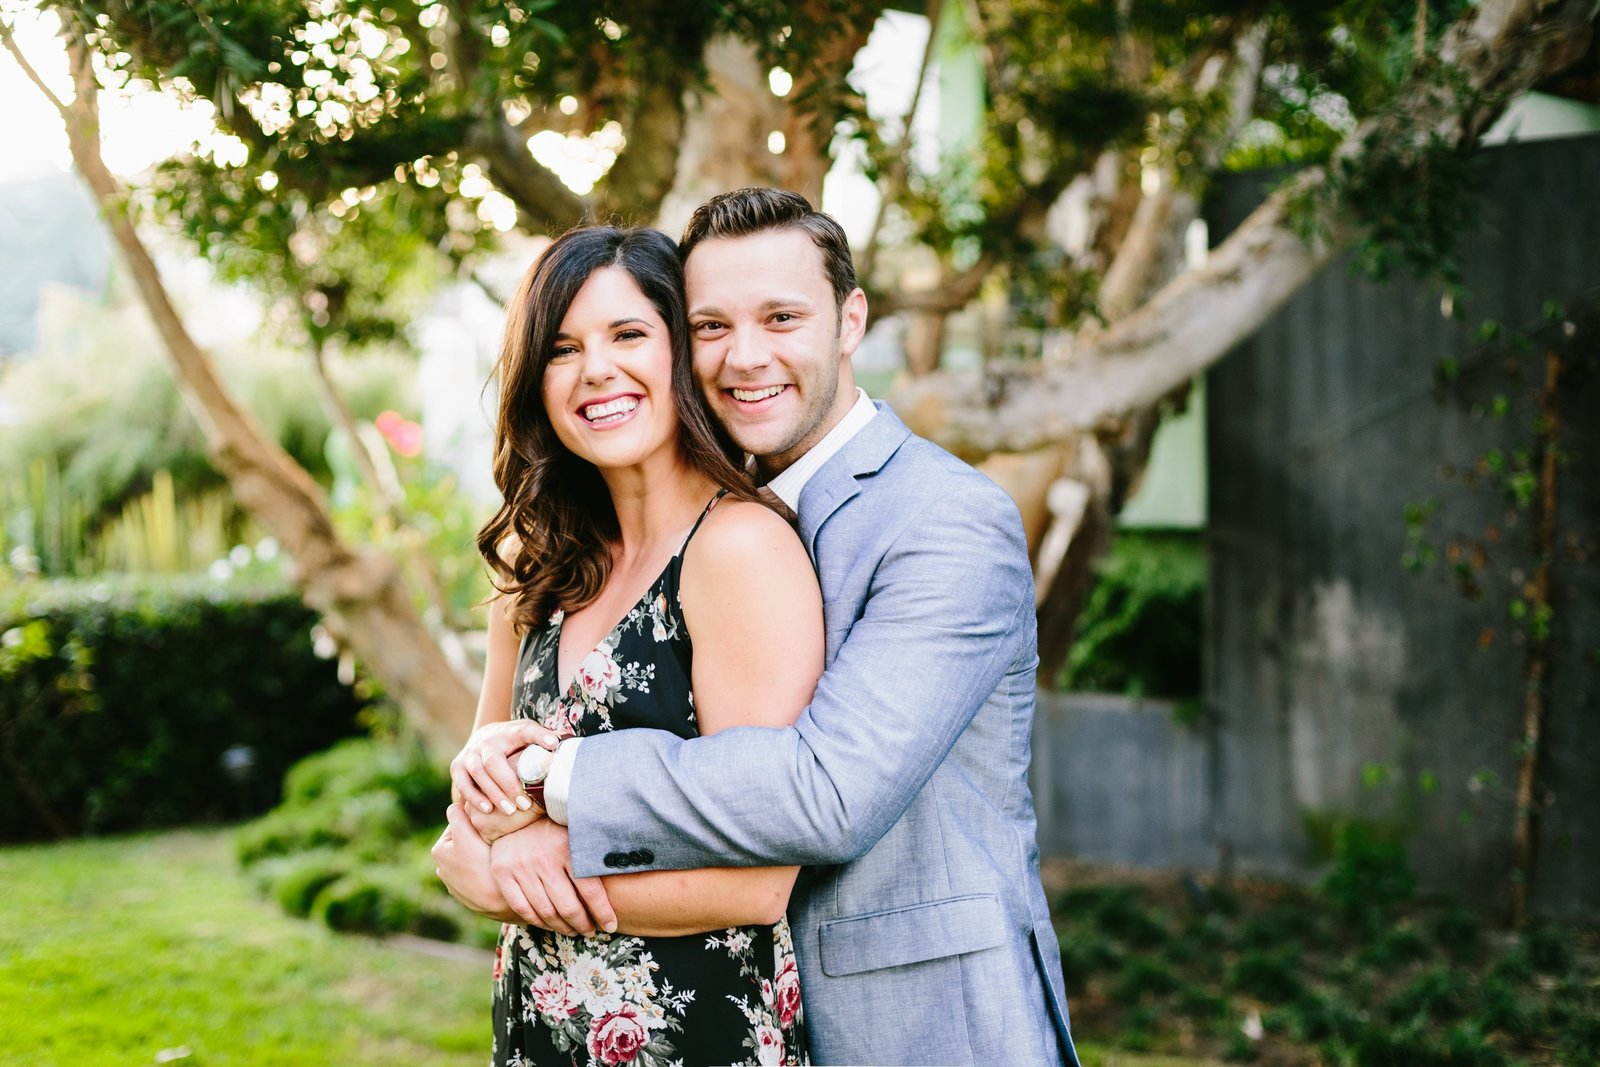 Engagement Photos-Jodee Debes Photography-142